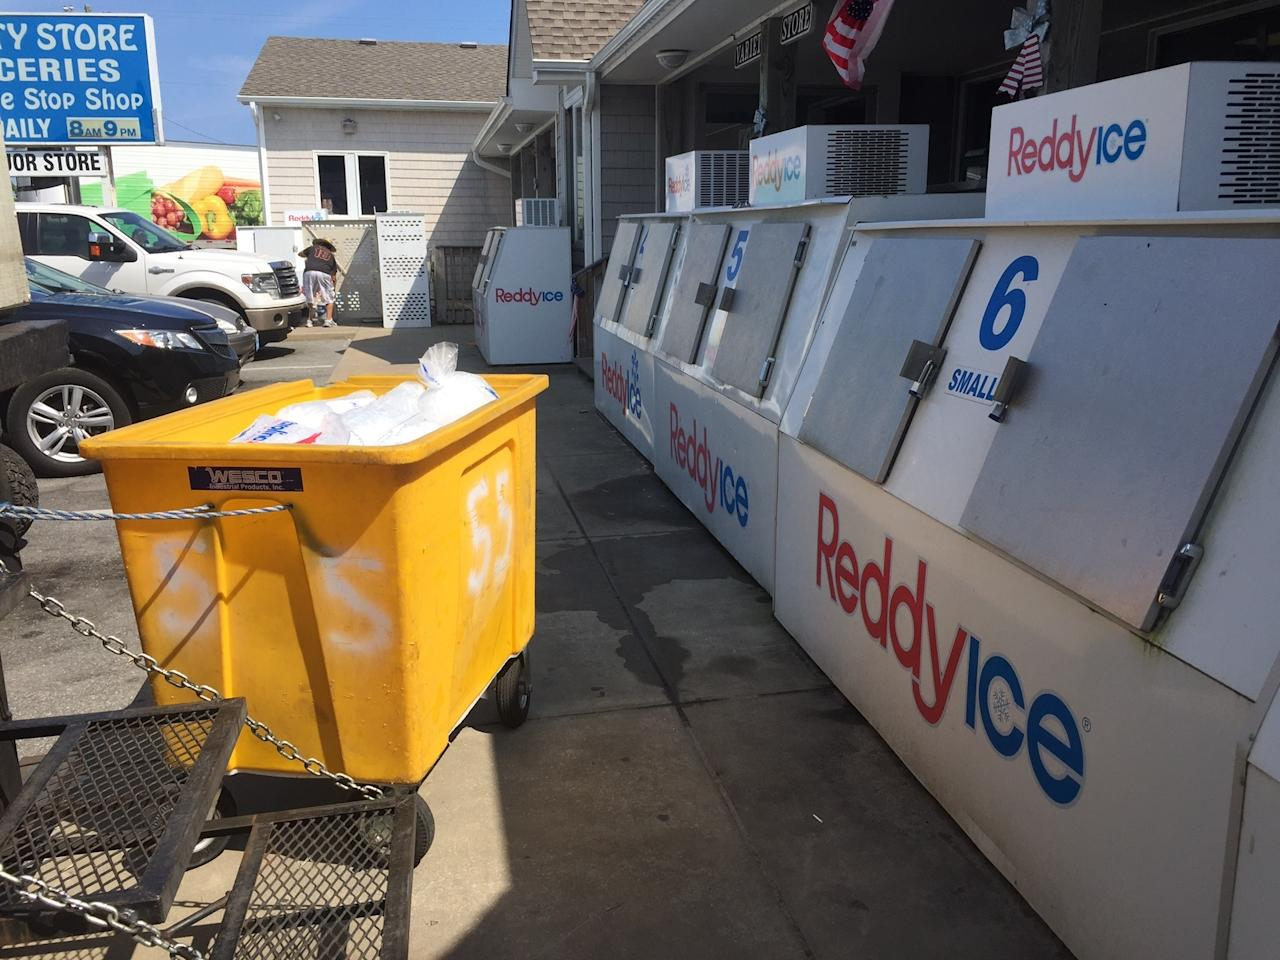 Ice is displayed at the Variety Store on Thursday, July 27, 2017, on Ocracoke Island on North Carolina's Outer Banks. An estimated 10,000 tourists were ordered Thursday to evacuate the island after a construction company caused a power outage, leaving people stranded without air conditioning or places to eat. (C. Leinbach/Ocracoke Observer via AP)